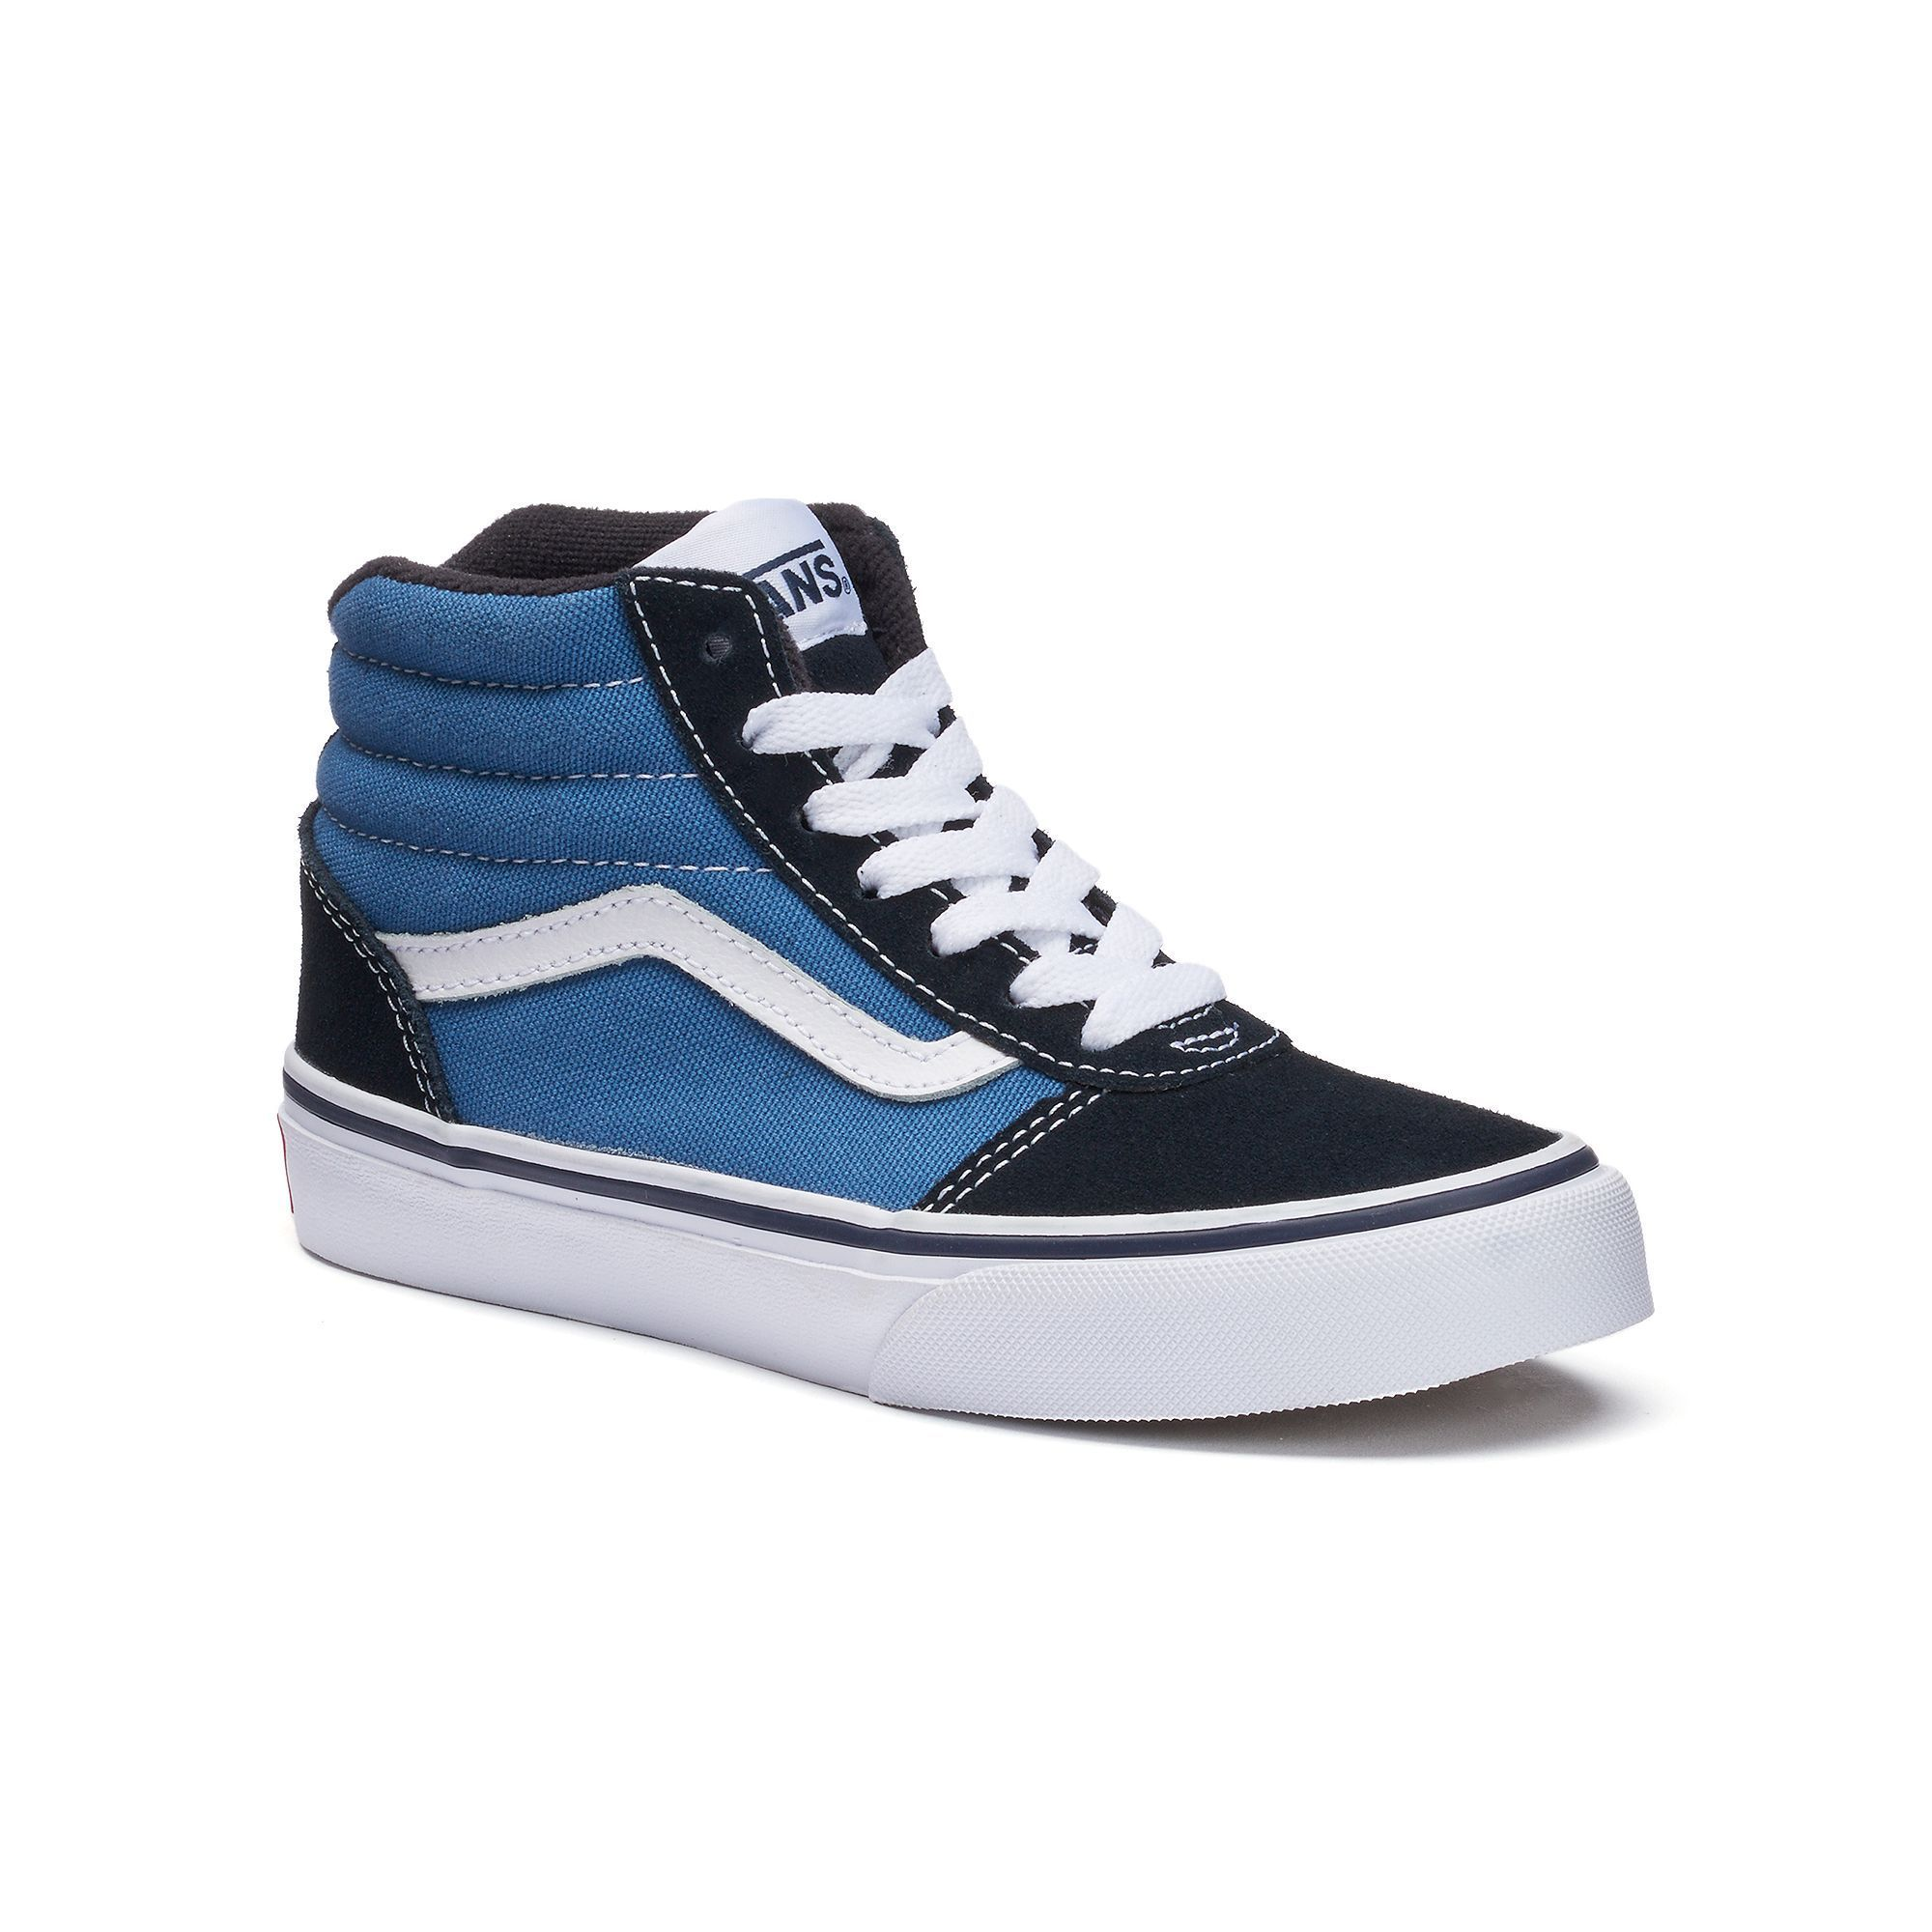 79dd9d33 Vans Ward Hi Kids' High-Top Sneakers | Products | High top sneakers ...